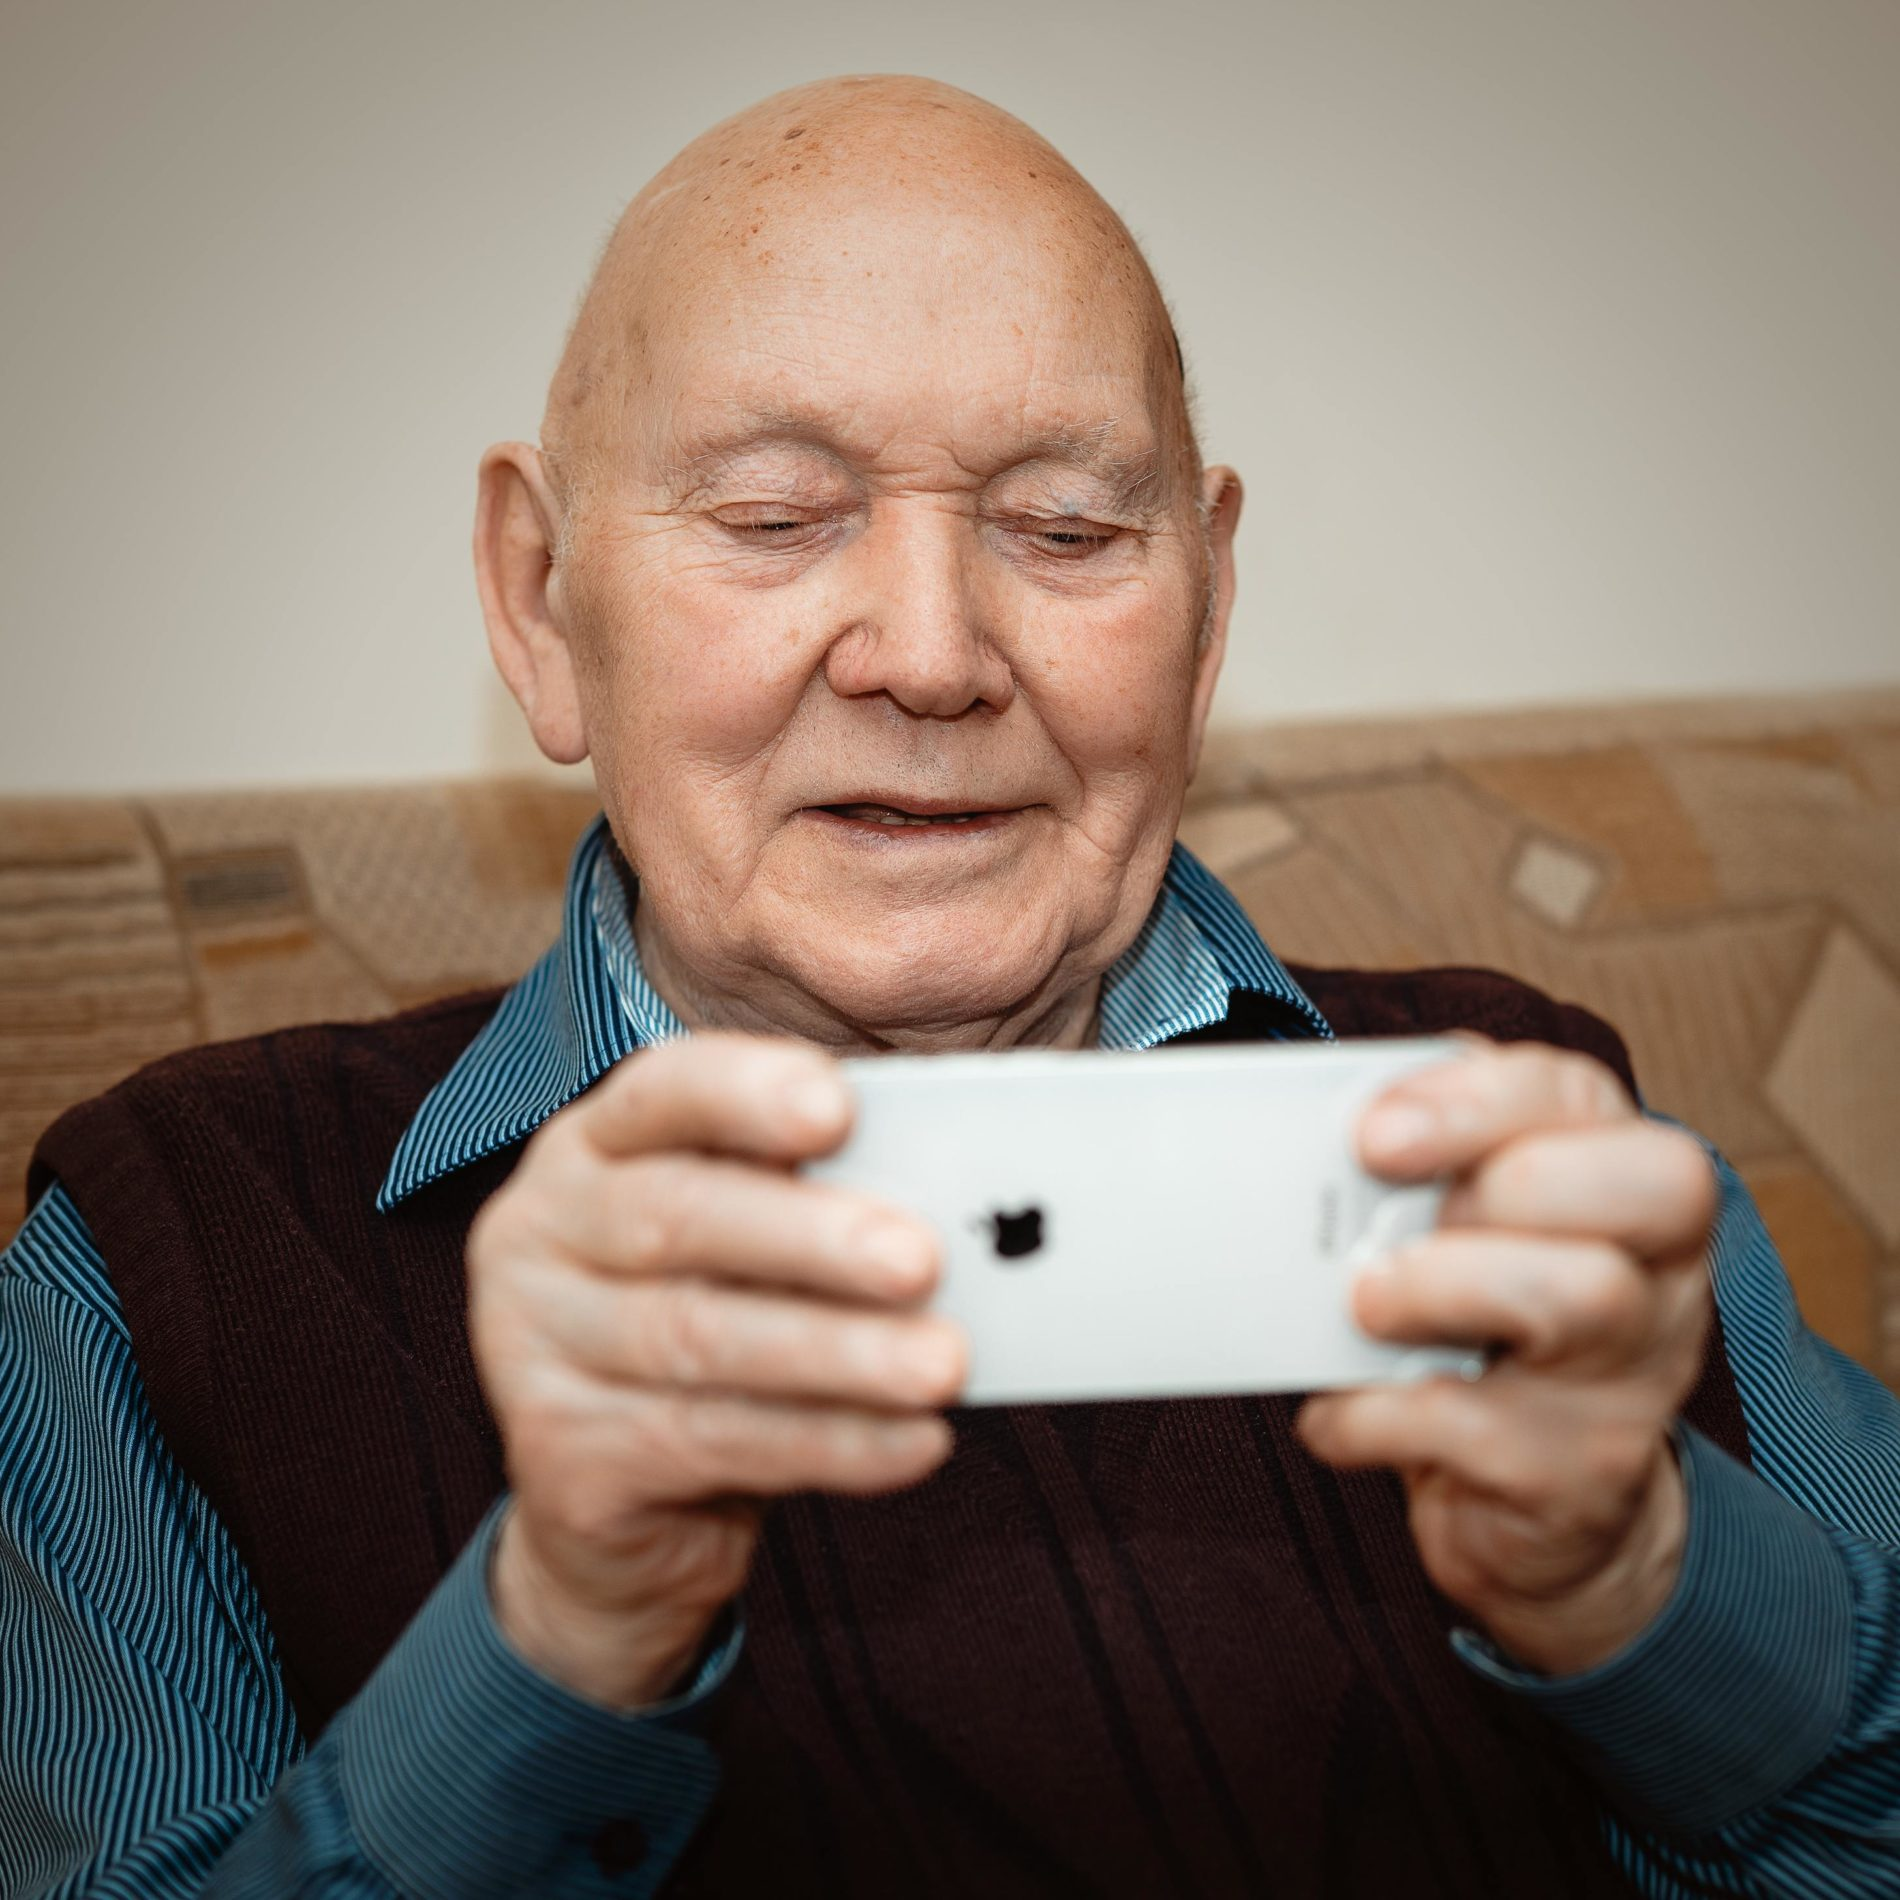 Coronavirus (COVID-19) – Top Tips for Helping Elderly Relatives to Stay Connected